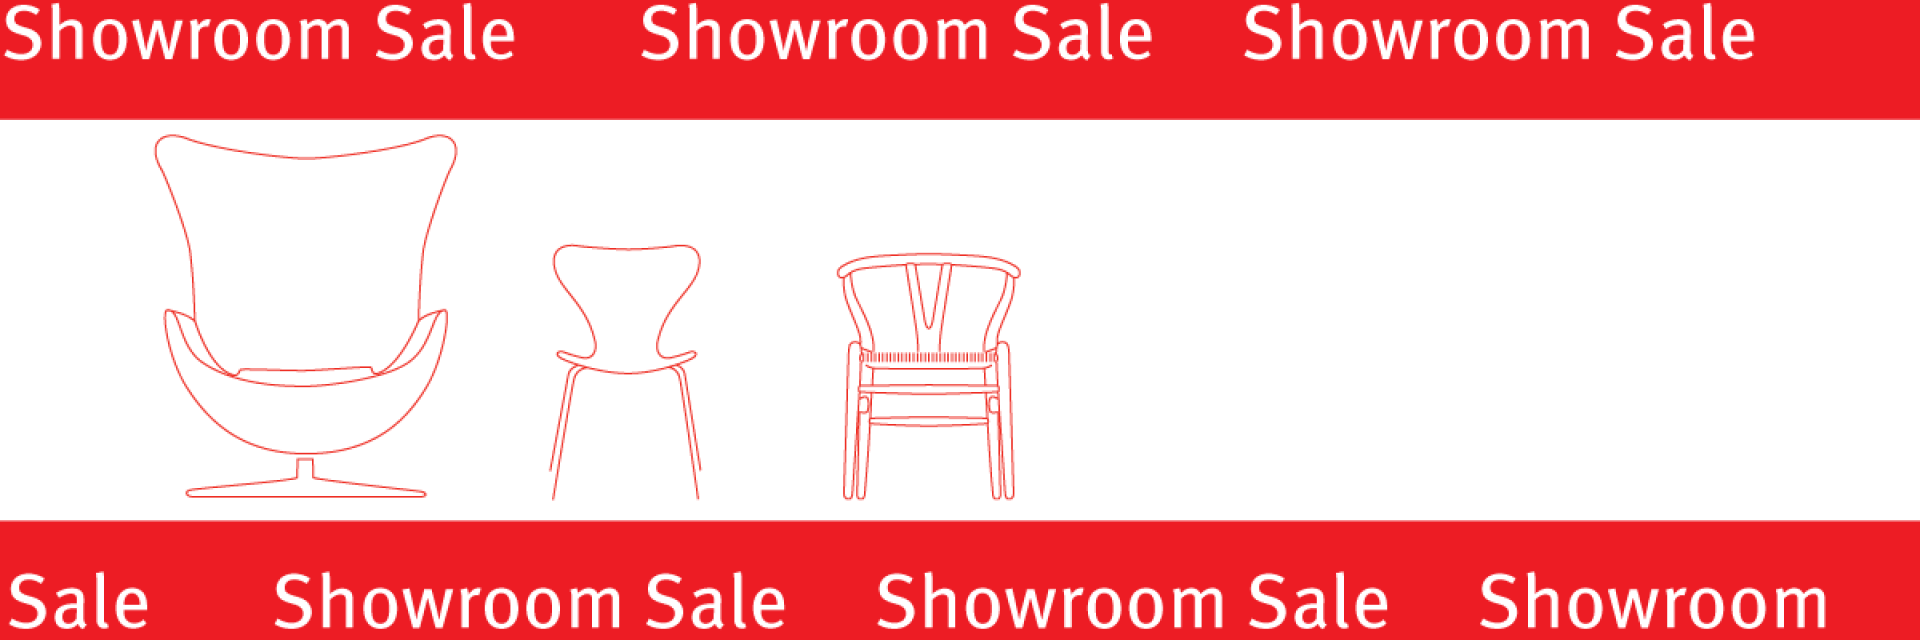 designcraft showroom sale